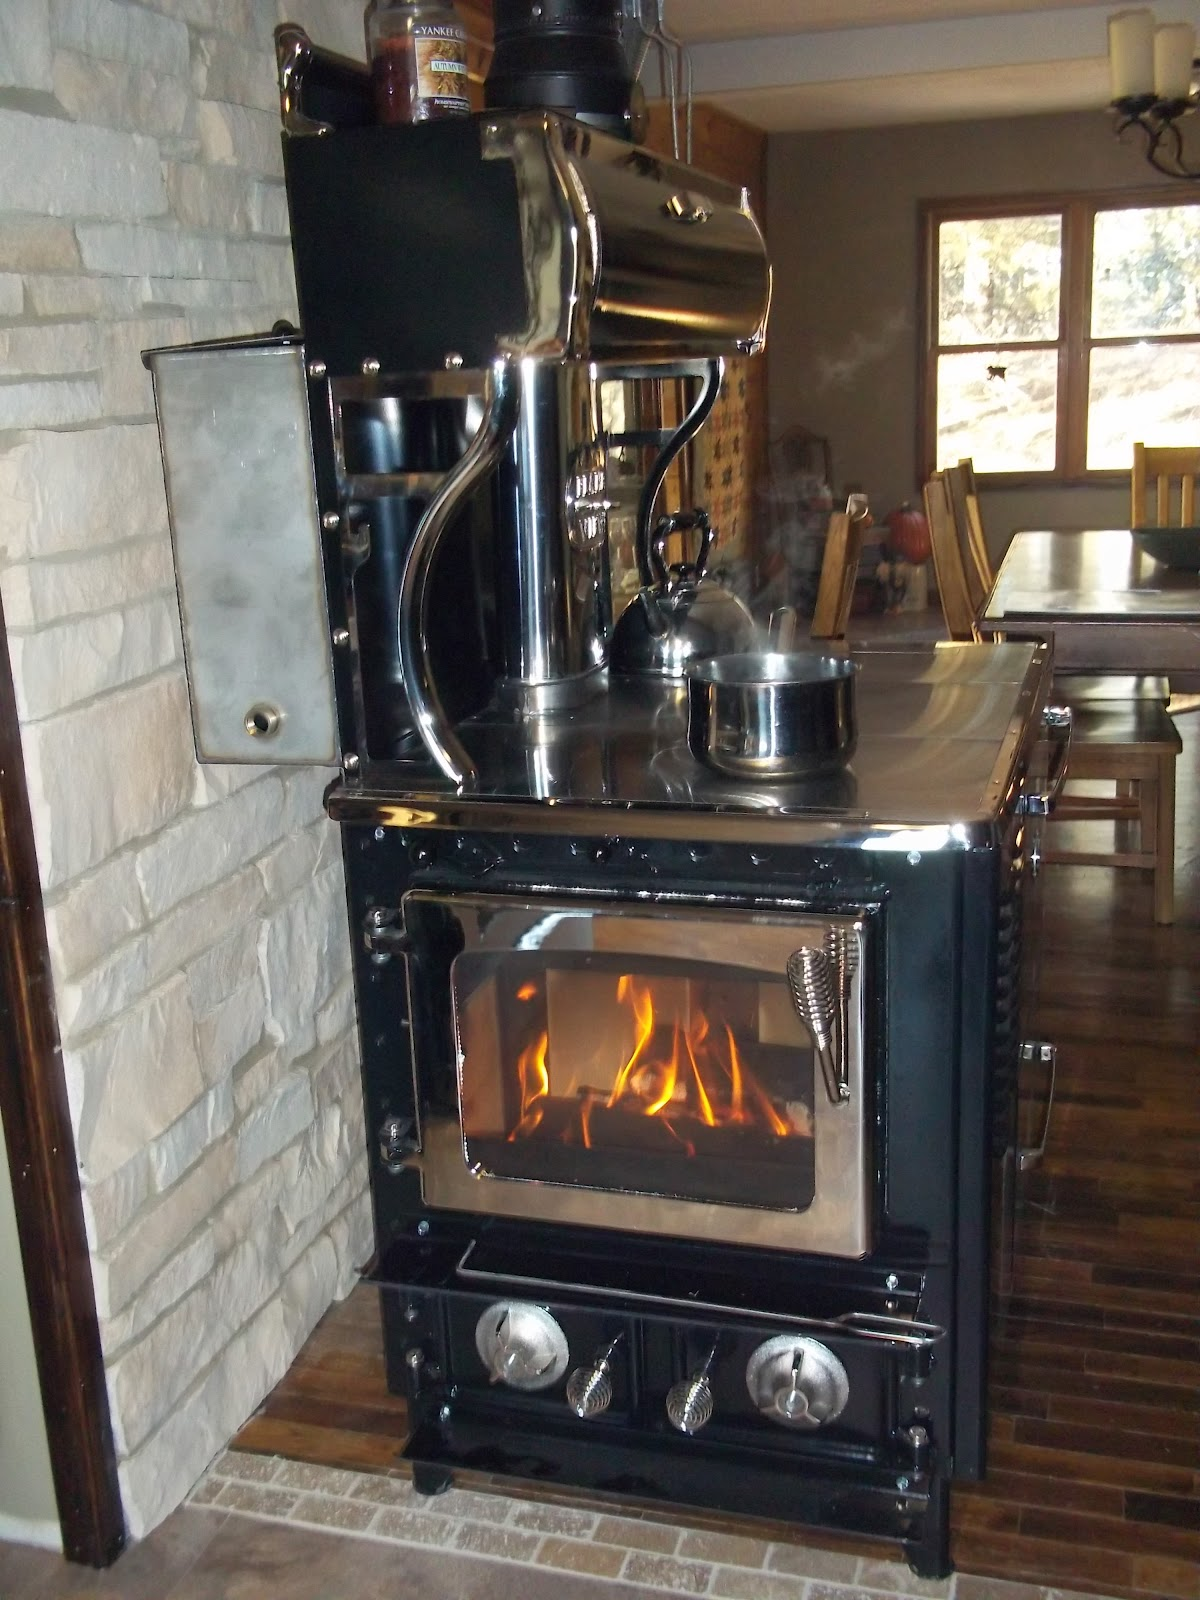 Wood Kitchen Stoves For Sale Commercial Wall Covering New Cook Stove In Bing Images